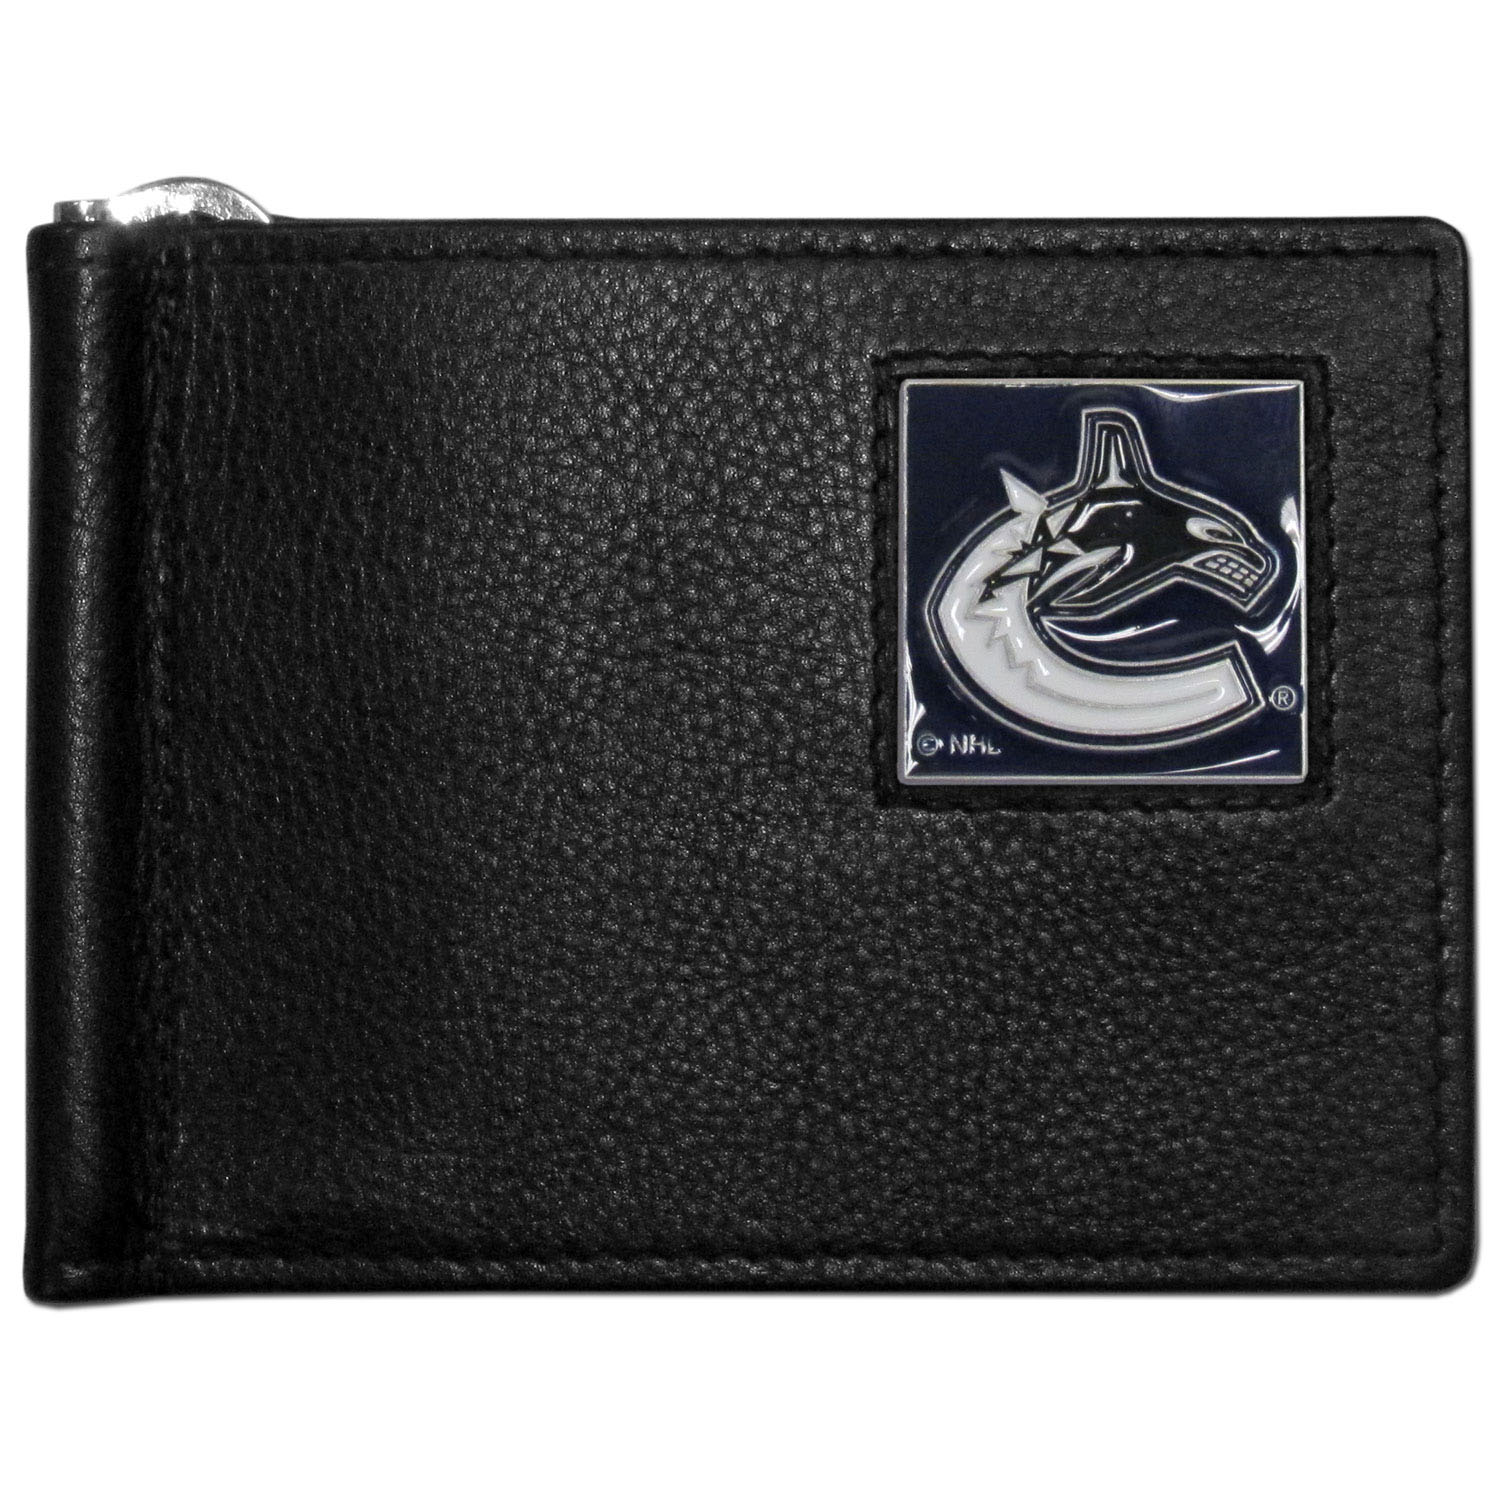 Vancouver Canucks® Leather Bill Clip Wallet - This cool new style wallet features an inner, metal bill clip that lips up for easy access. The super slim wallet holds tons of stuff with ample pockets, credit card slots & windowed ID slot. The wallet is made of genuine fine grain leather and it finished with a metal Vancouver Canucks® emblem. The wallet is shipped in gift box packaging.